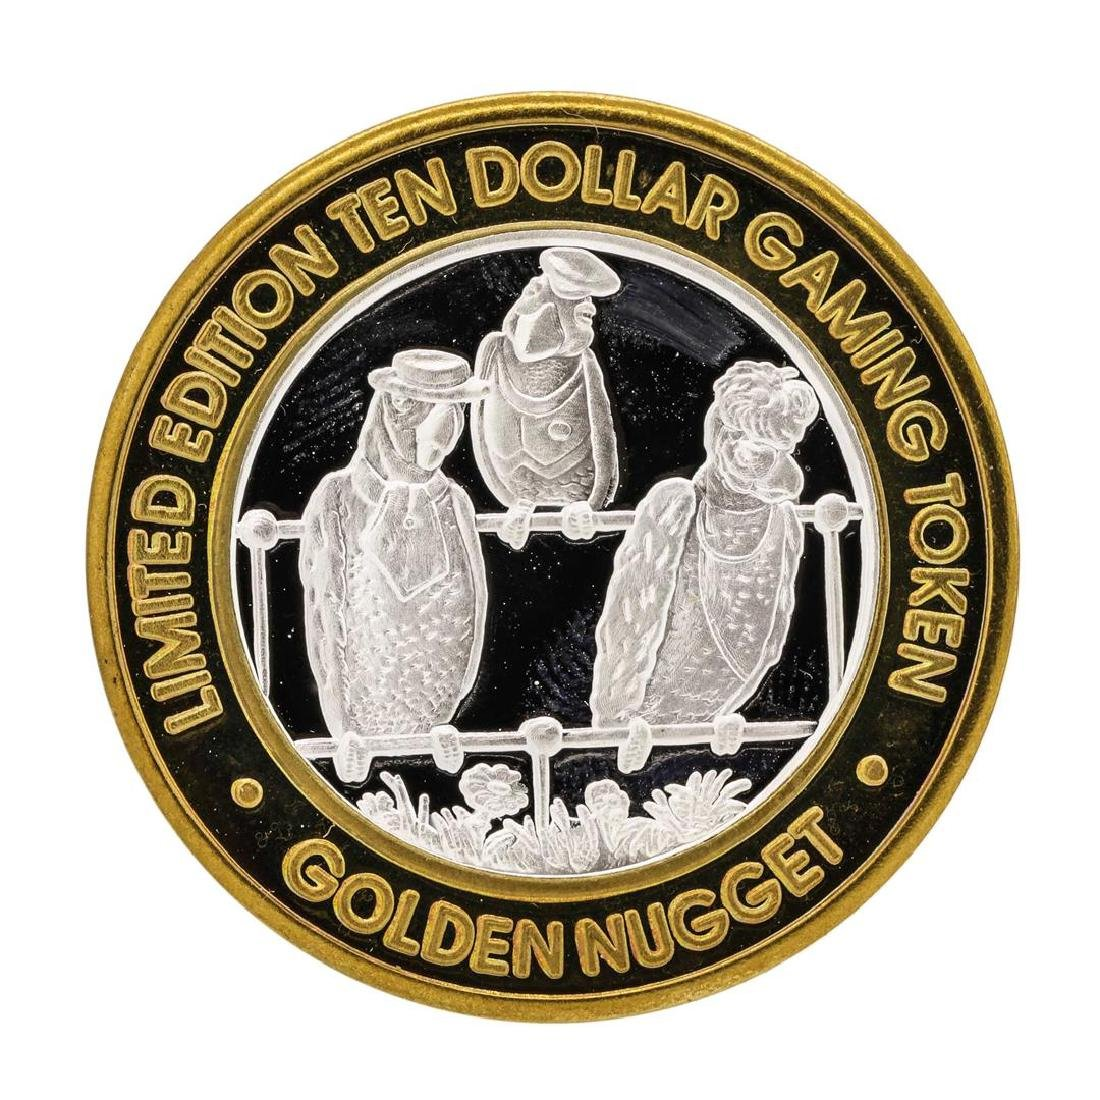 .999 Silver Golden Nugget Laughlin $10 Casino Limited